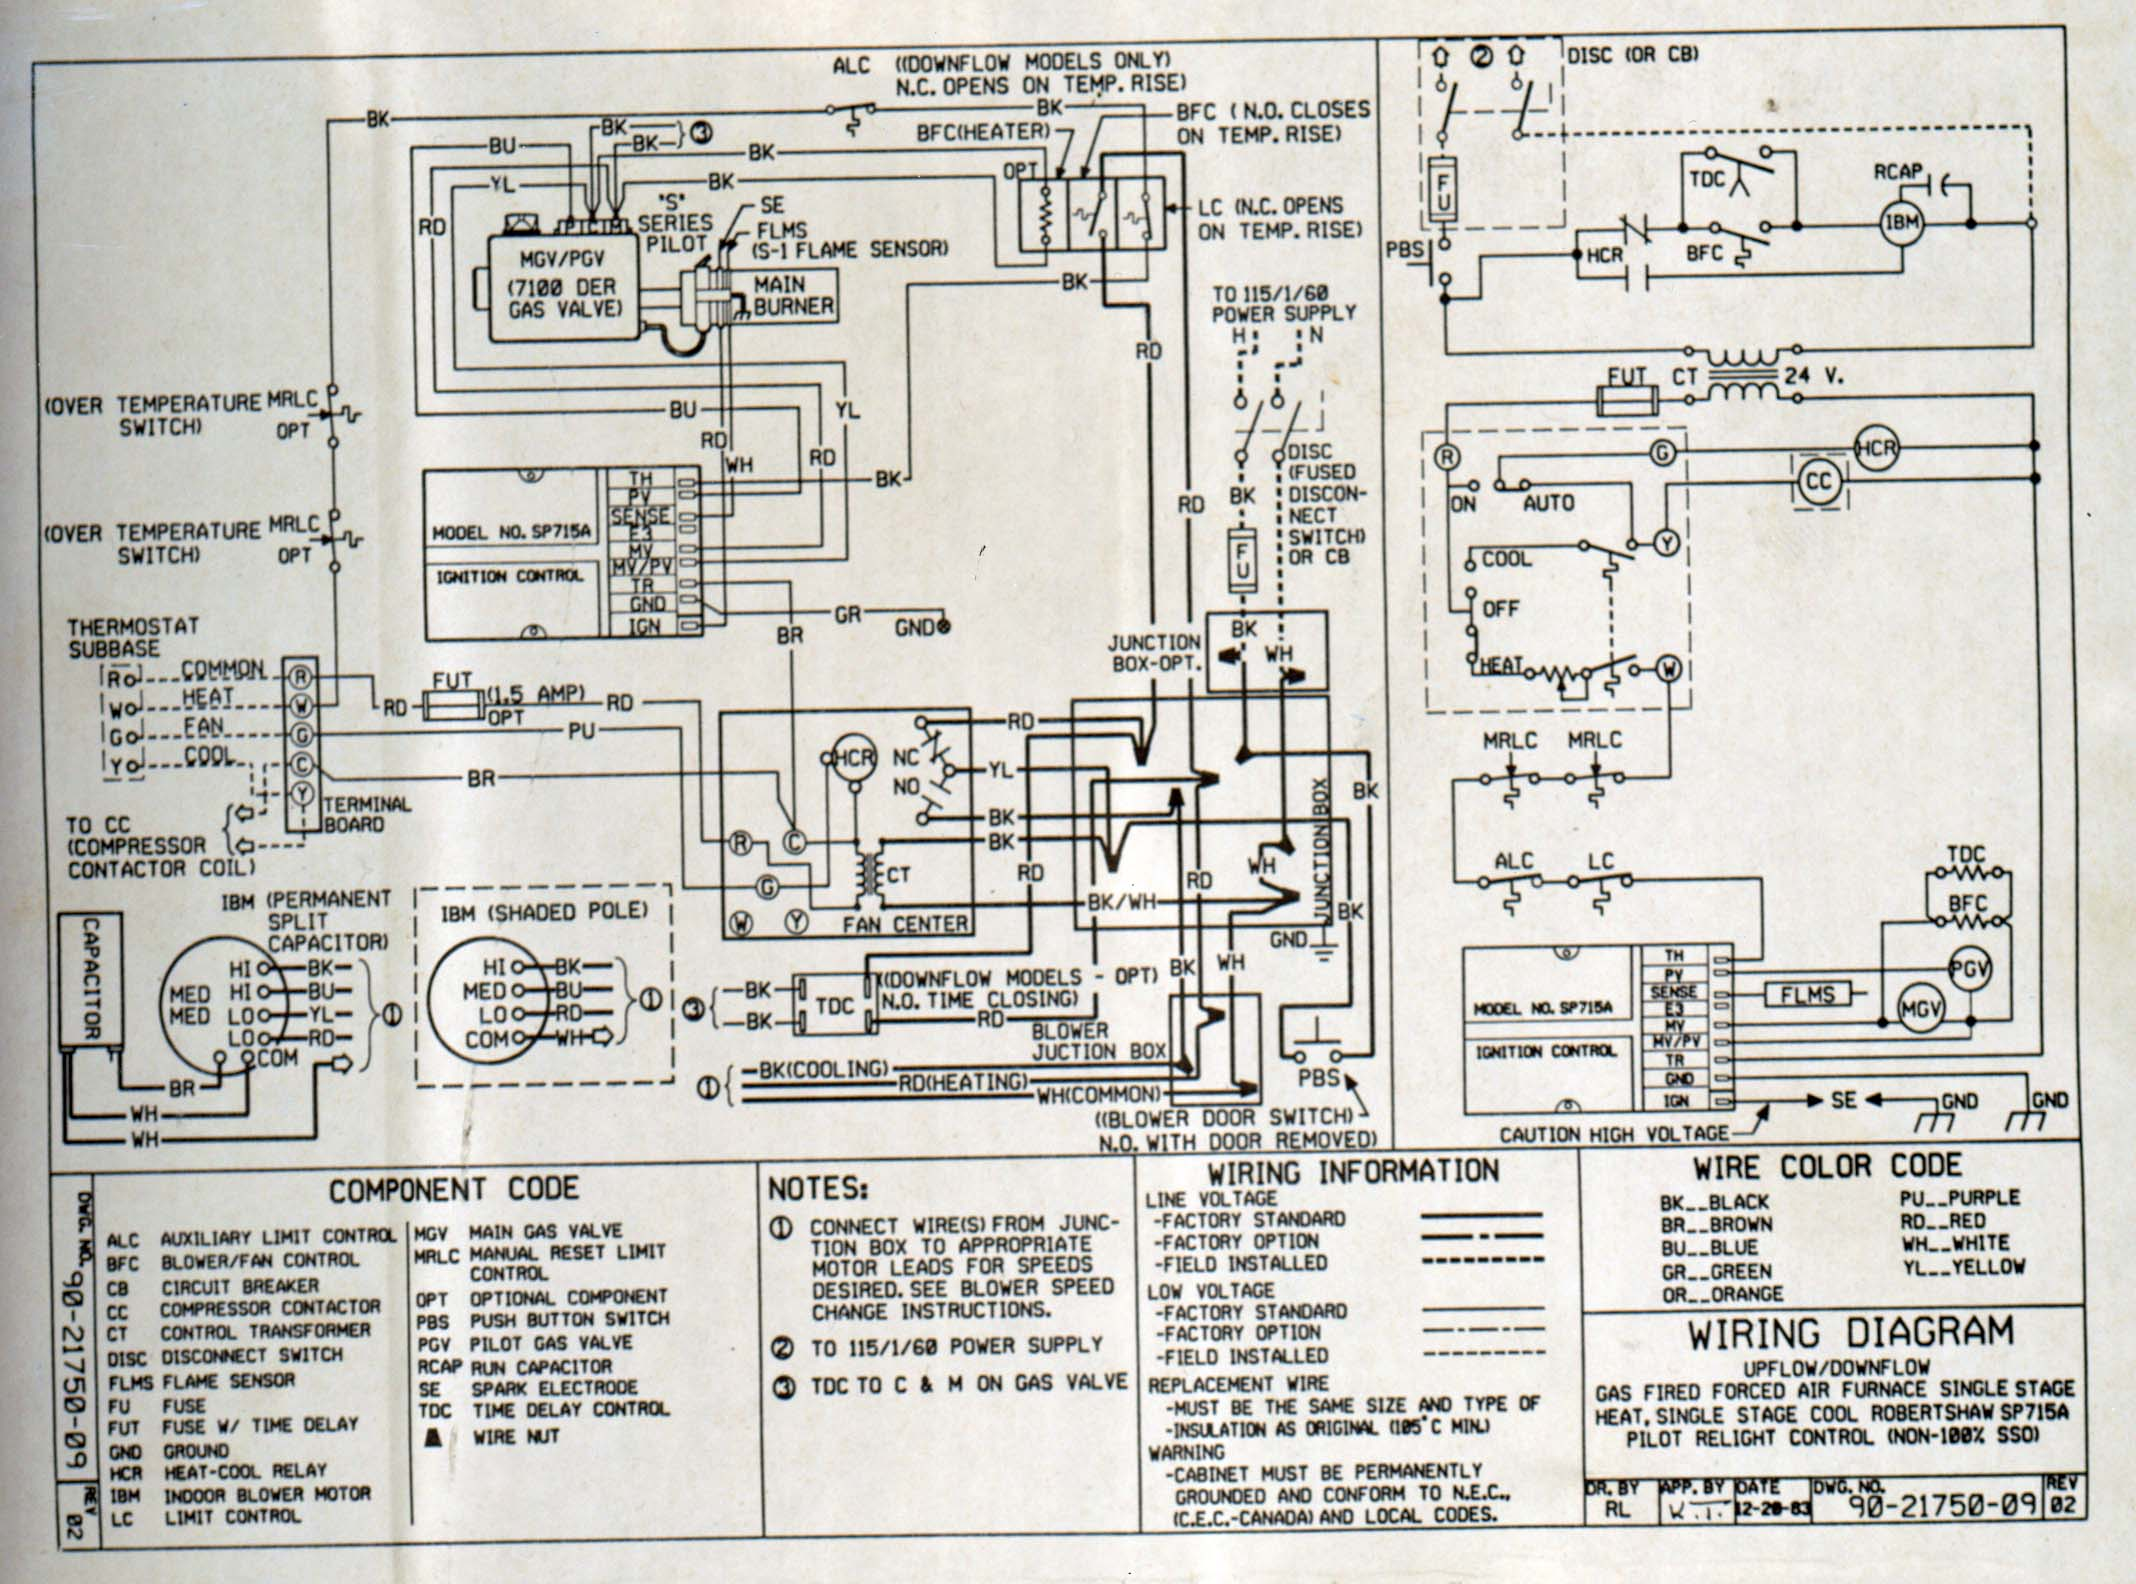 Rheem Air Conditioner Wiring Diagram – Rheem Heat Pump Wiring Diagram